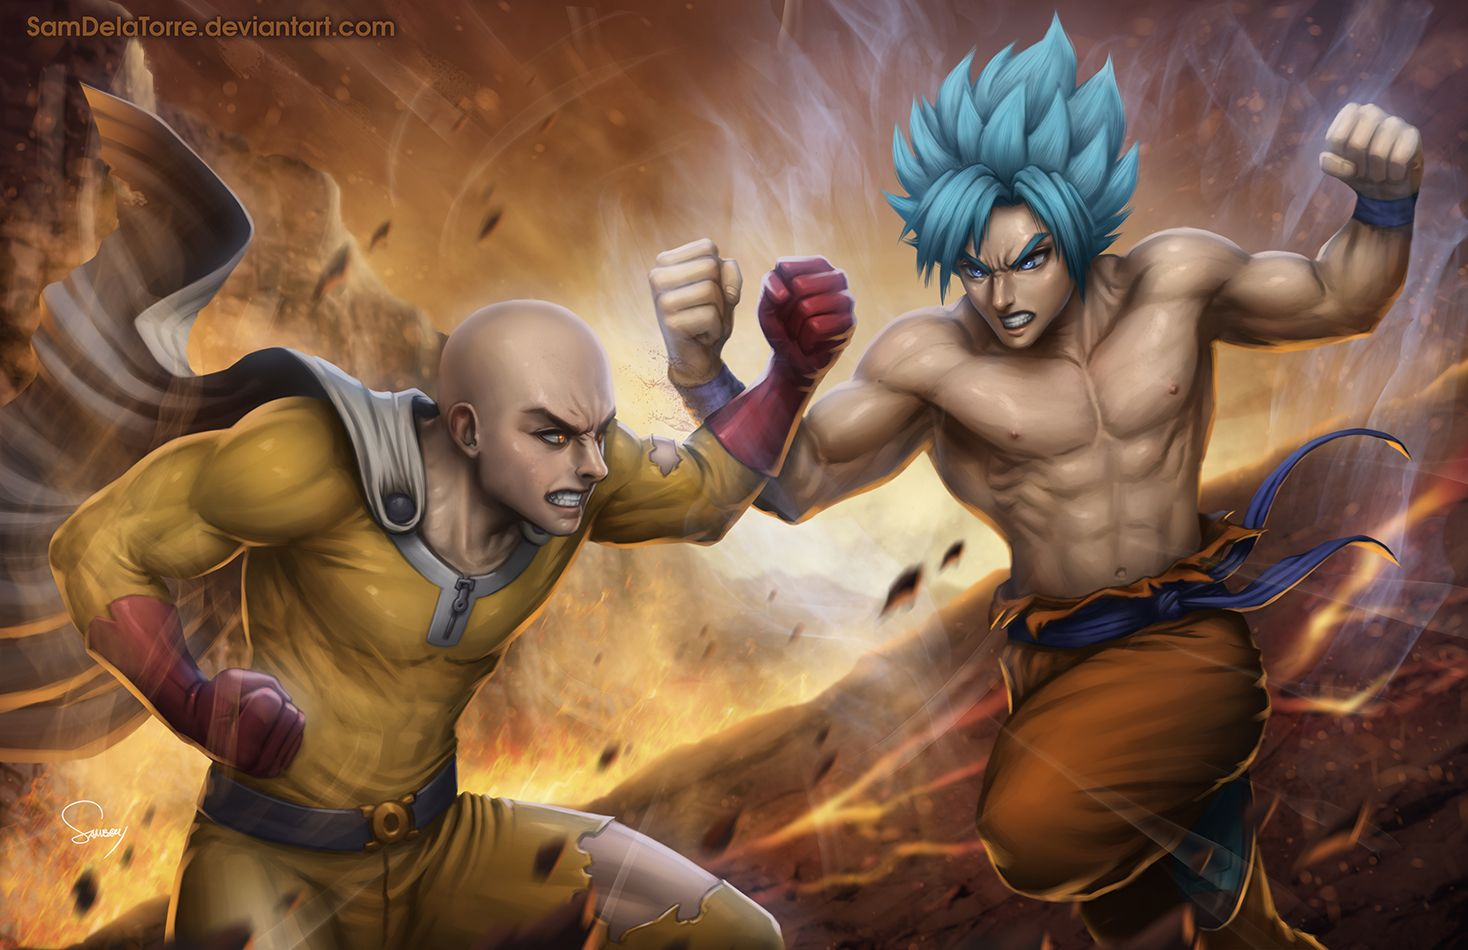 Image result for Saitama vs goku pinterest